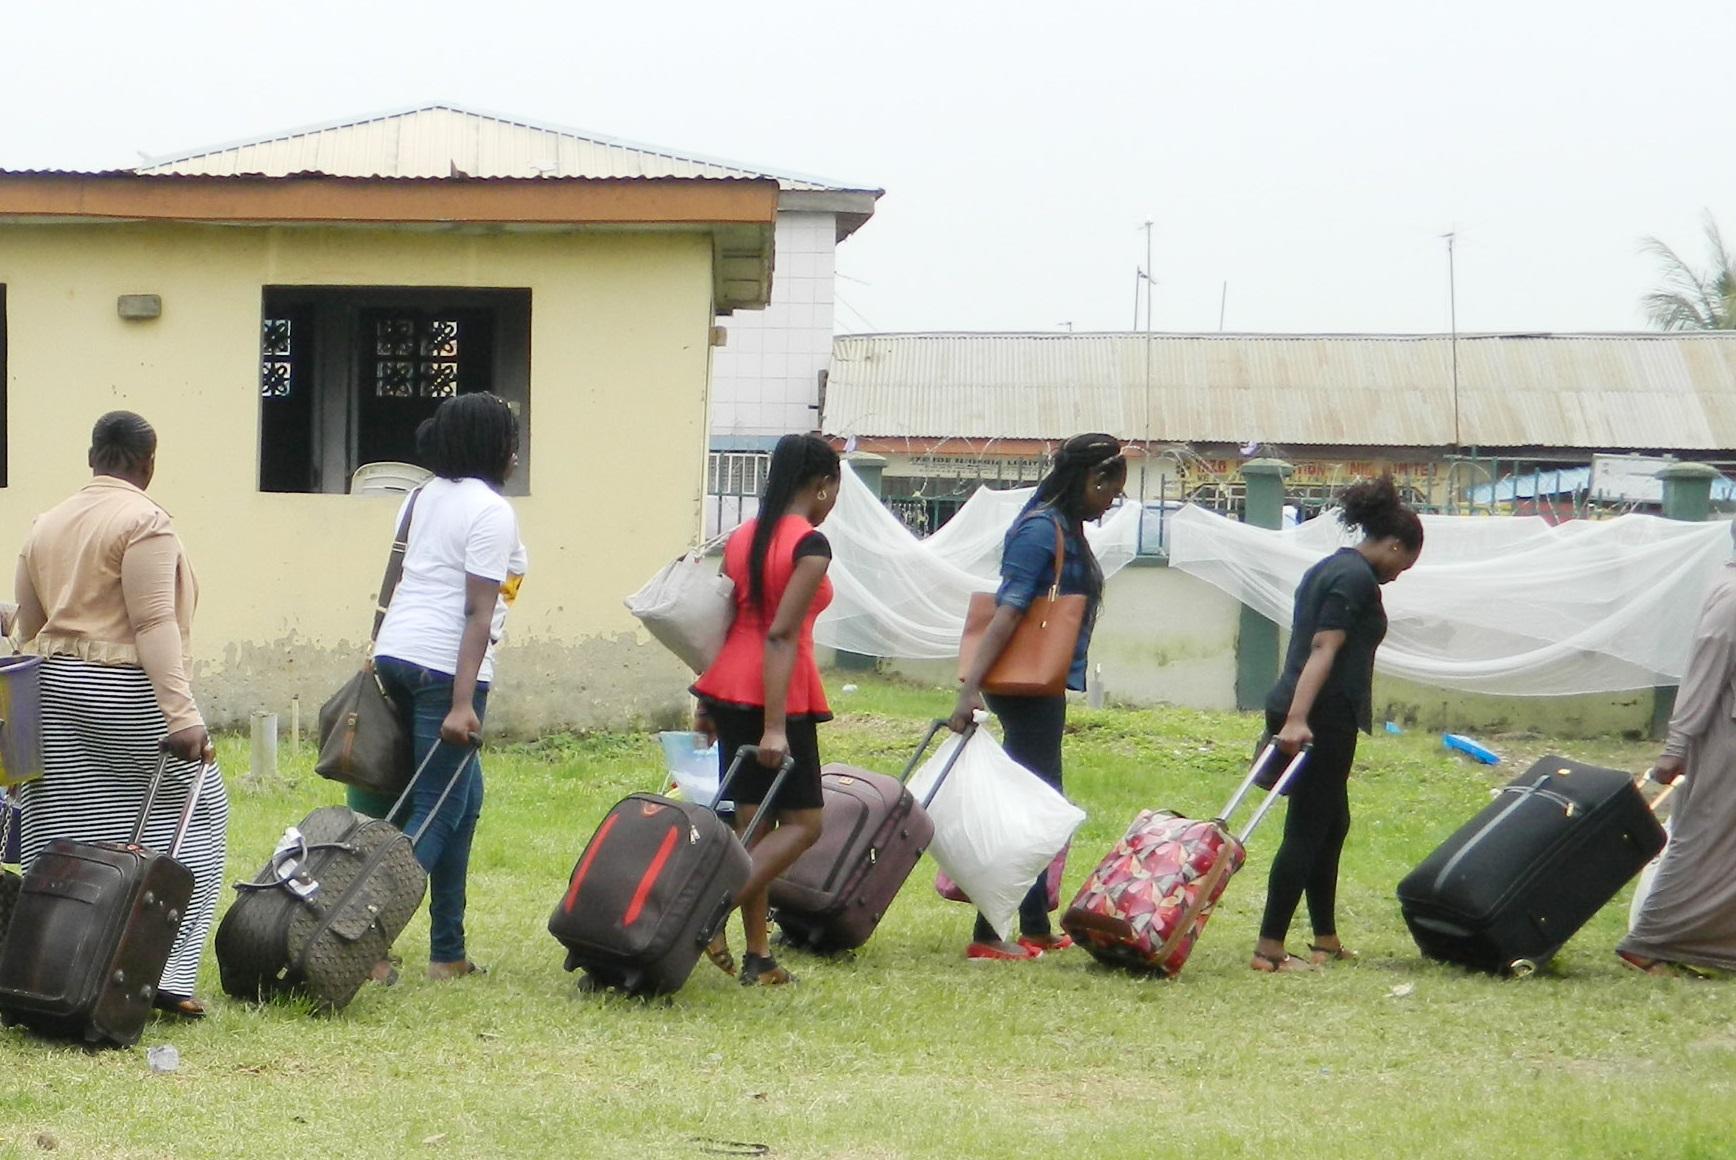 Basic NYSC Requirements for camp